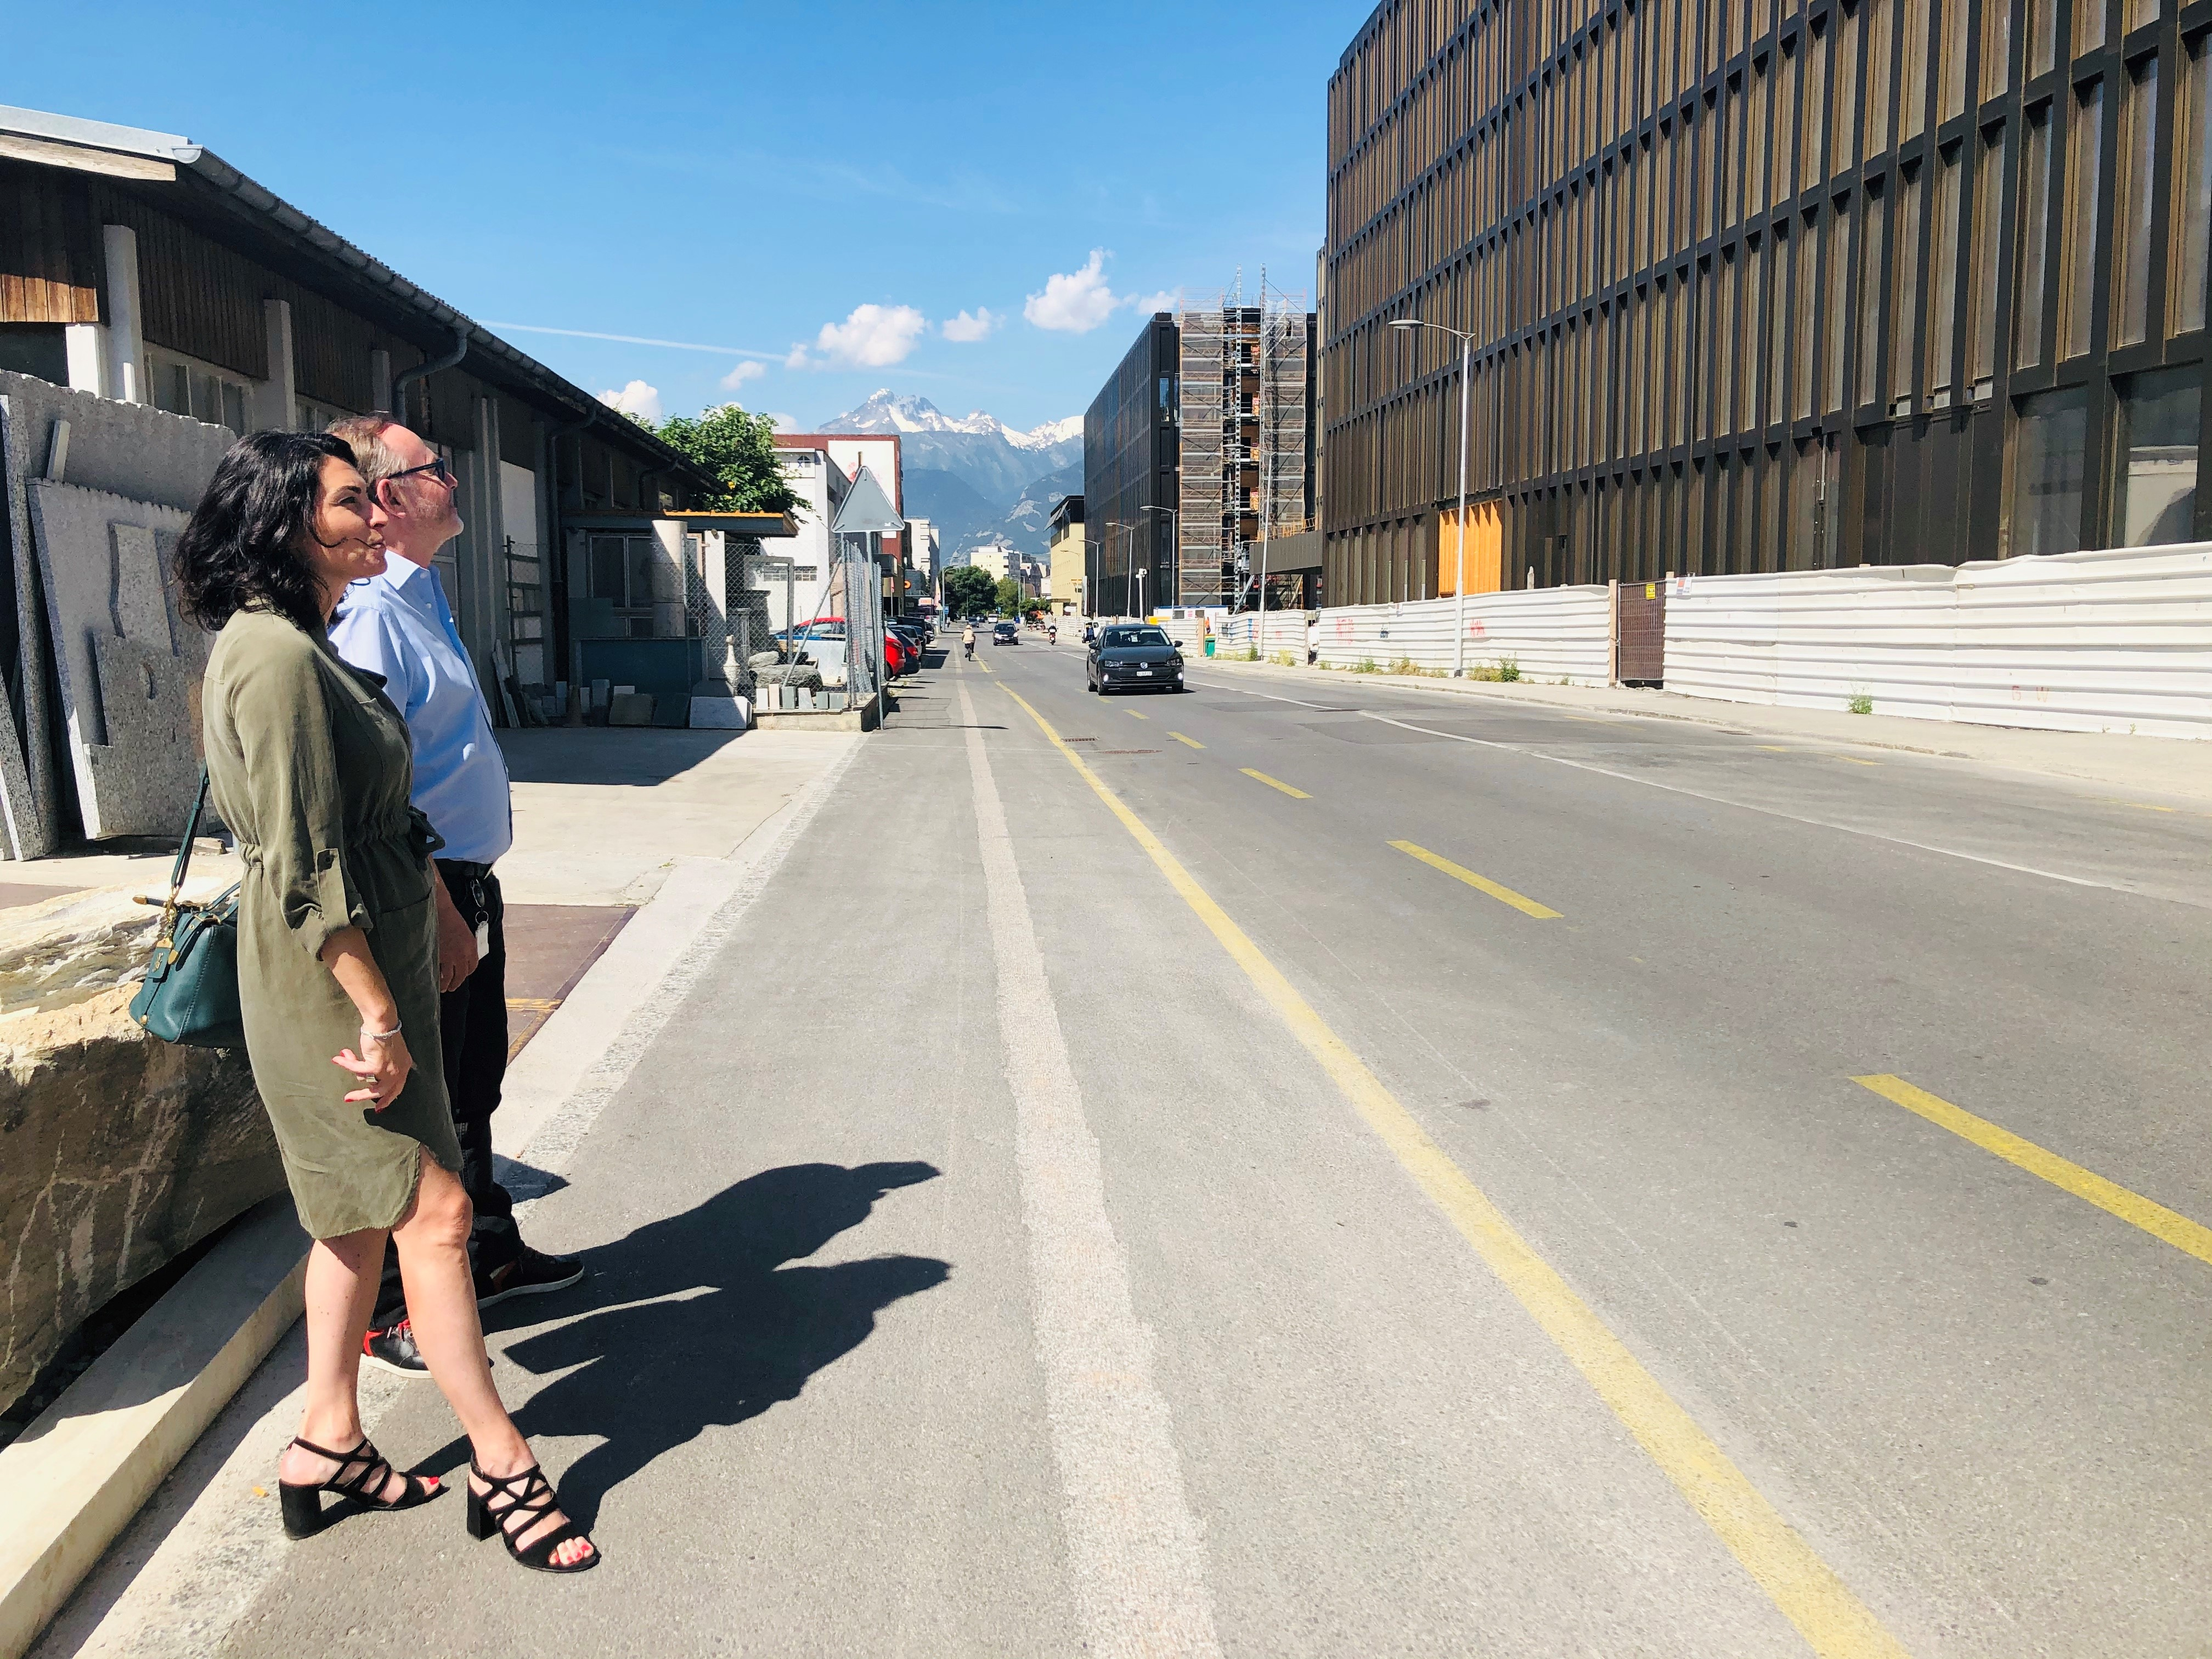 Sophia Dini and Marc-André Berclaz in front of the Energypolis campus. Sophia Dini, the Valais cantonal delegate for the economy and innovation, and Marc-André Berclaz, the operational director of EPFL Valais Wallis are in charge of the Energypolis campus.